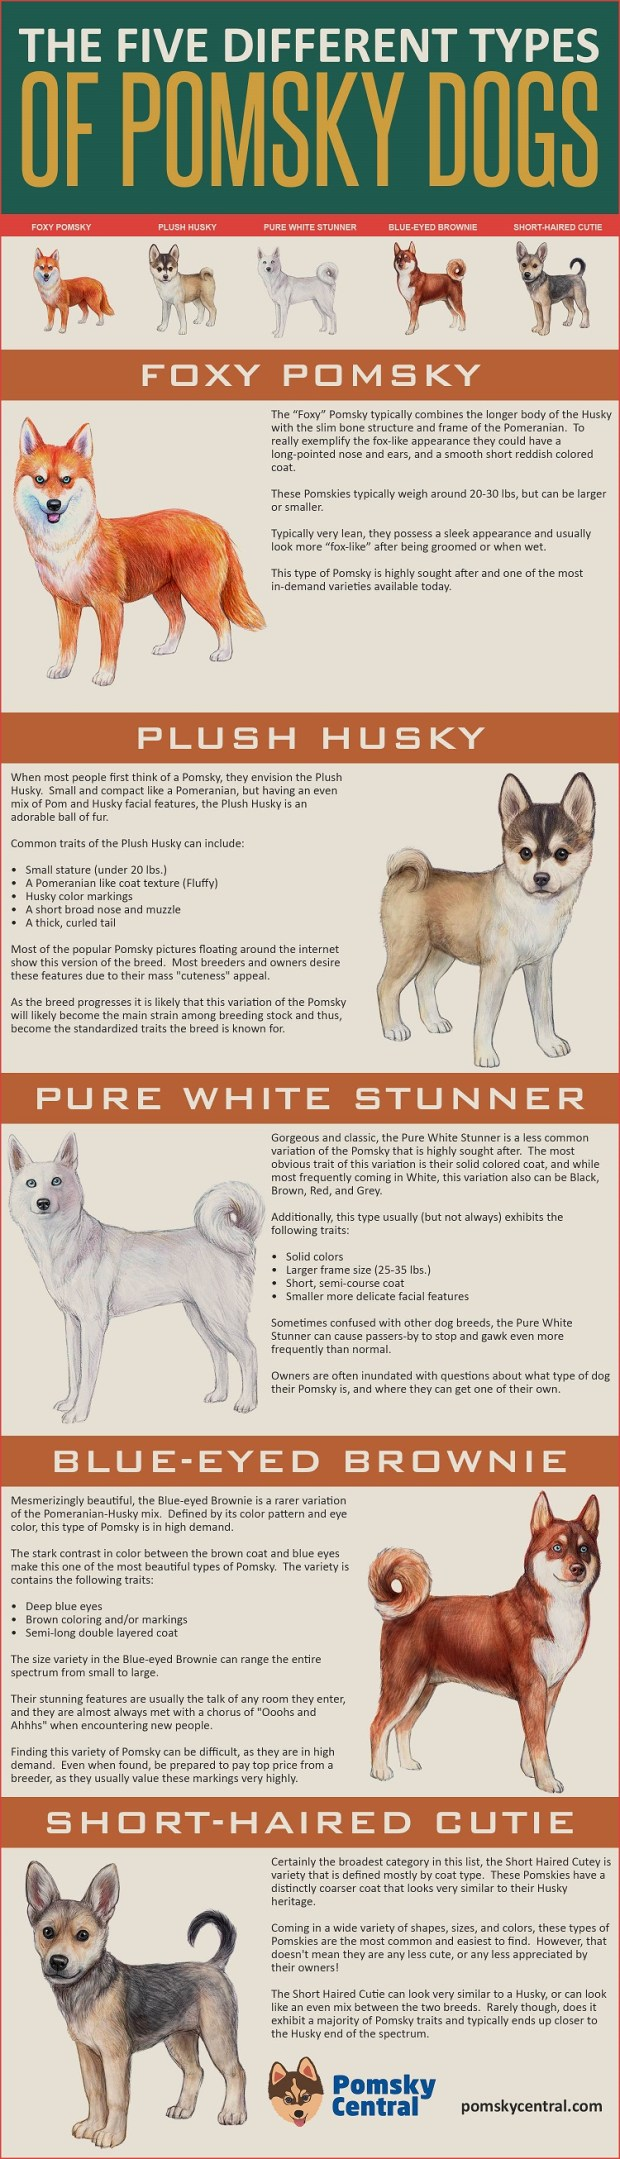 Infographic - The five different types of pomsky dogs: pure white stunner, foxy pomsky, blue eyed brownie, short haired cutie, and plush husky